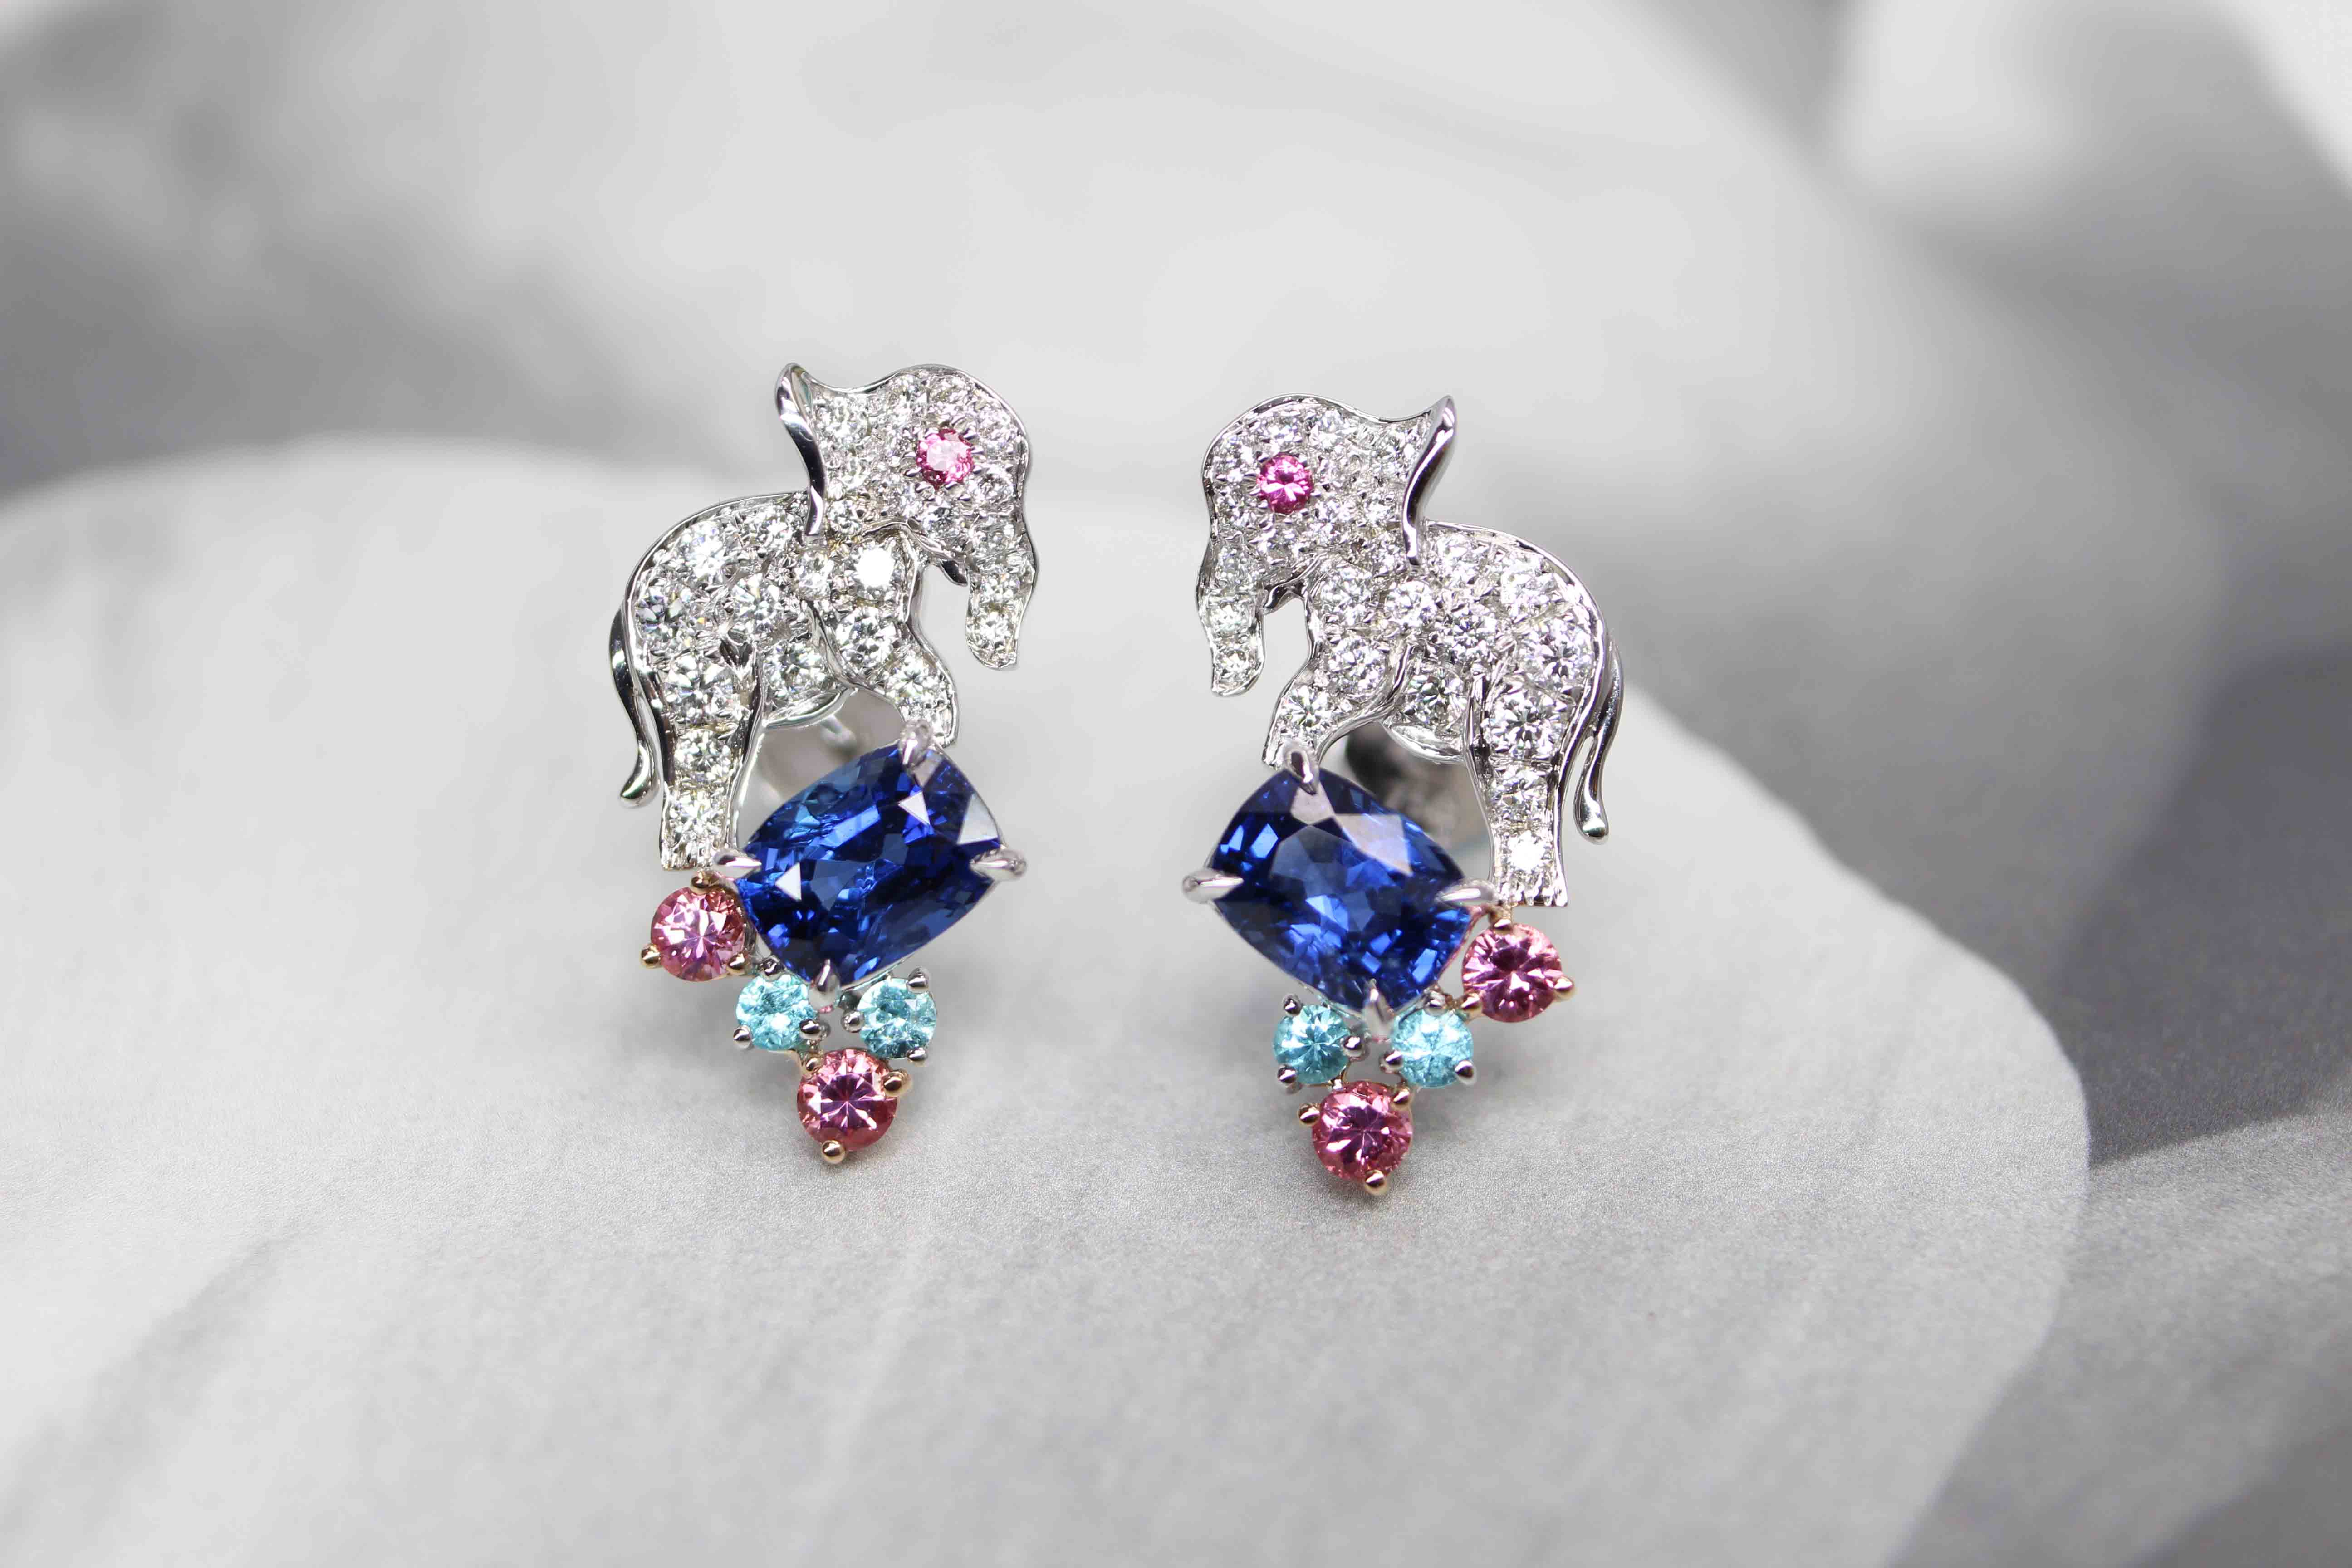 Customised Elephant Earring with Blue Sapphire unheat, Paraiba Tourmaline and Spinel gemstone, round diamond | Customised Fine Jewellery in unique natural animals and precious gemstone - Local Singapore Bespoke Customised Jewellery in Fine Jewellery